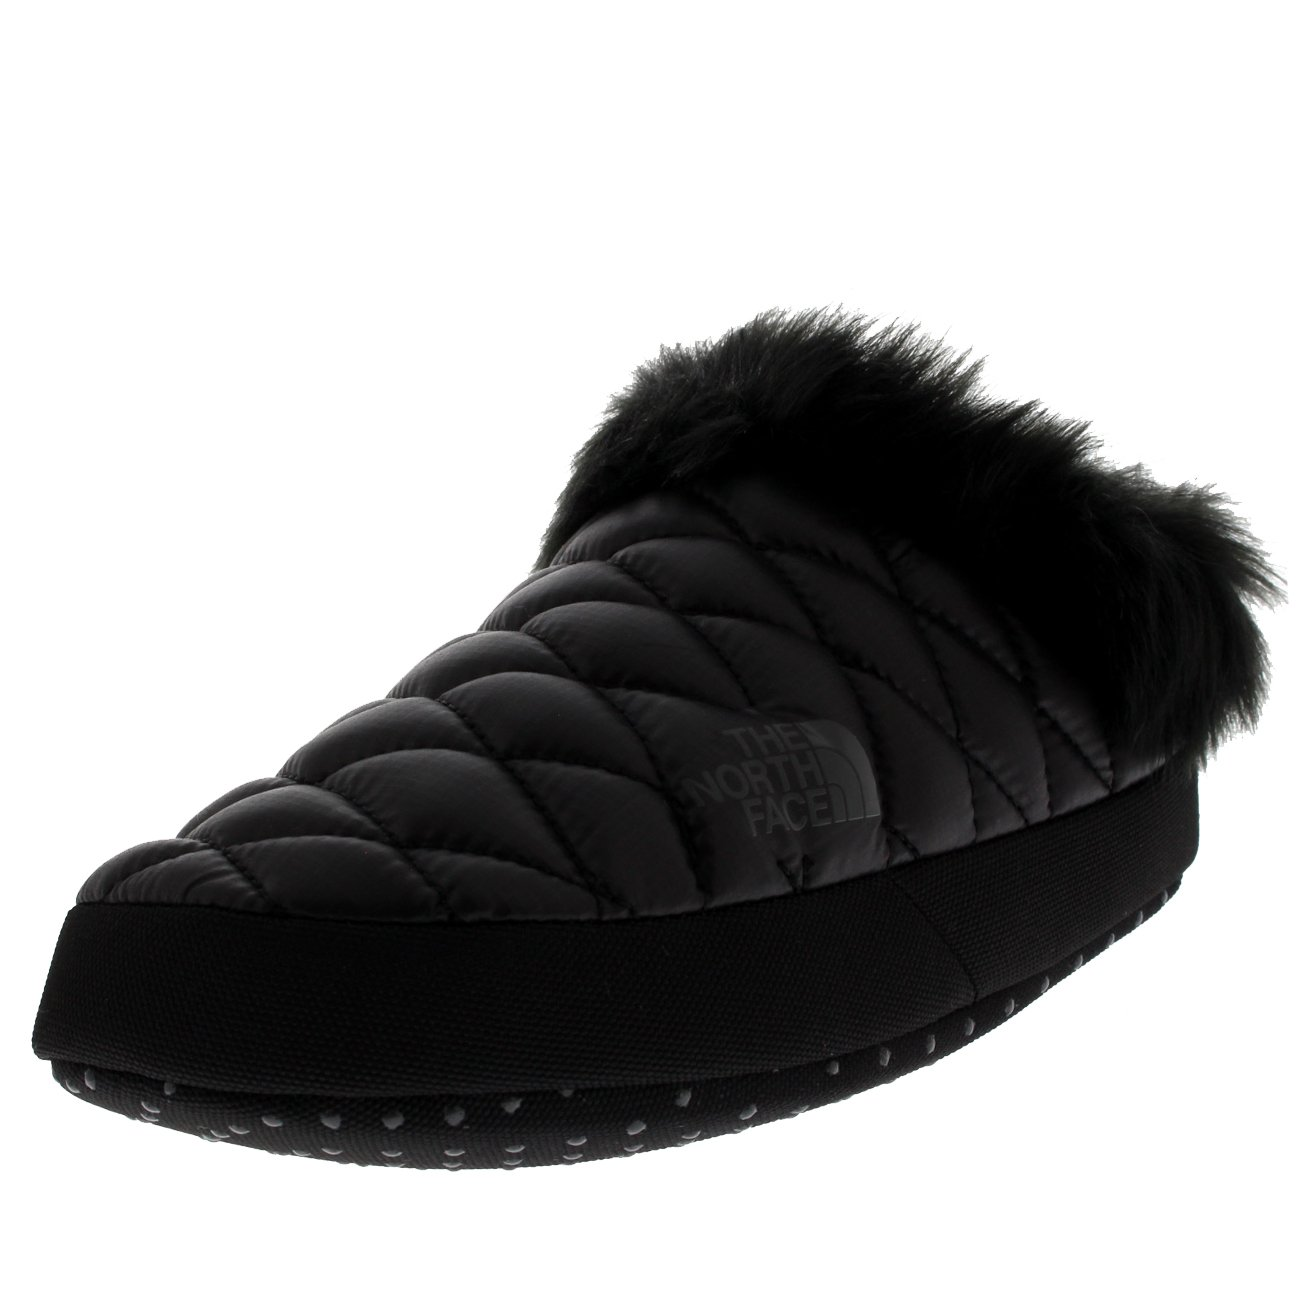 The North Face Womens Thermoball Tent Mule IV Cosy Faux Fur Slippers - Shiny Black/Beluga Gray - 8-9.5